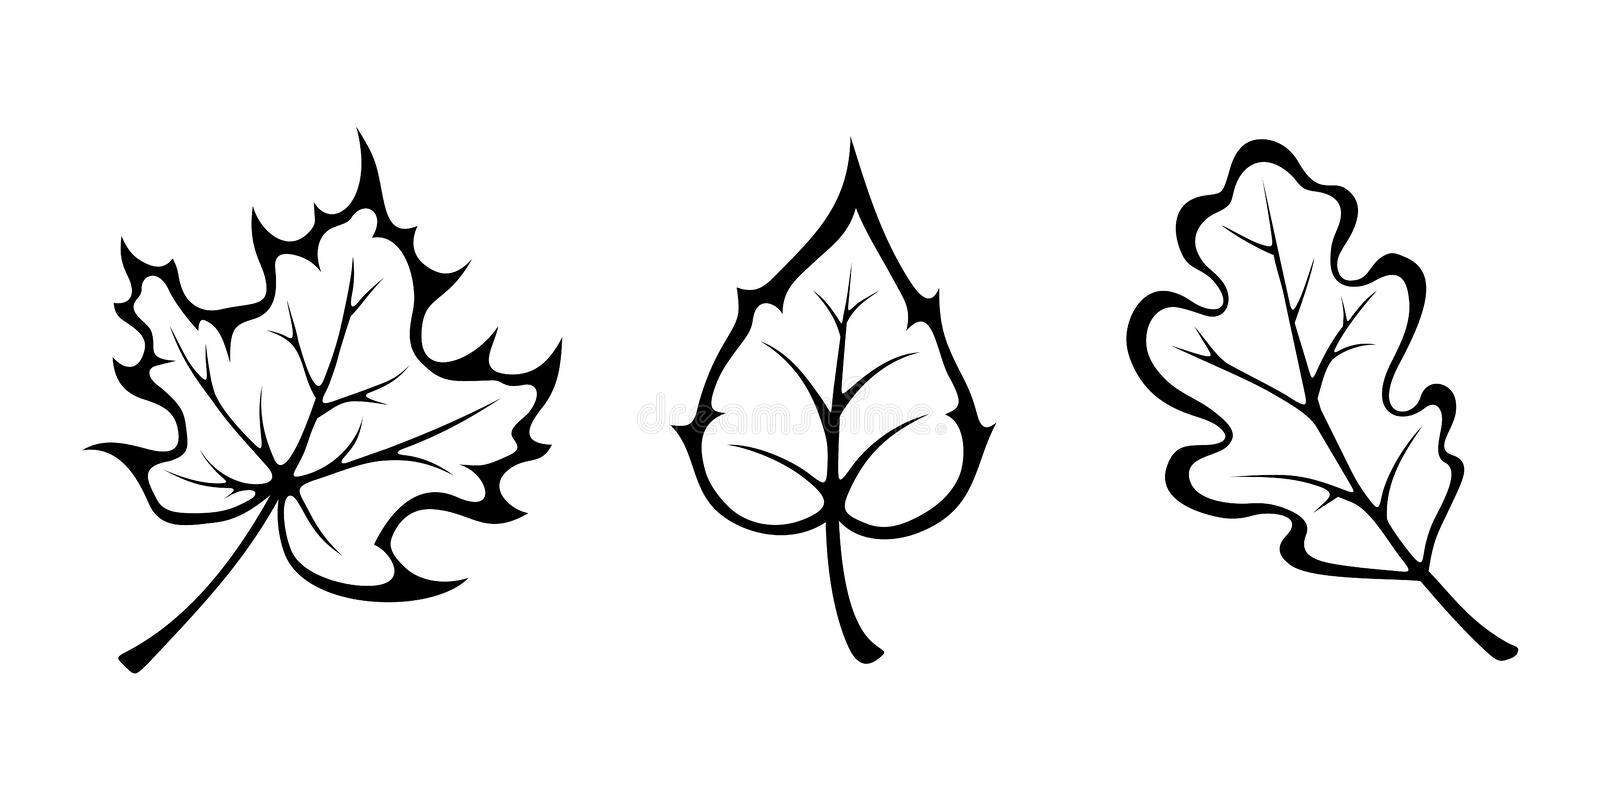 autumn leaves vector black contours stock vector illustration of rh dreamstime com  fall leaves black and white clipart